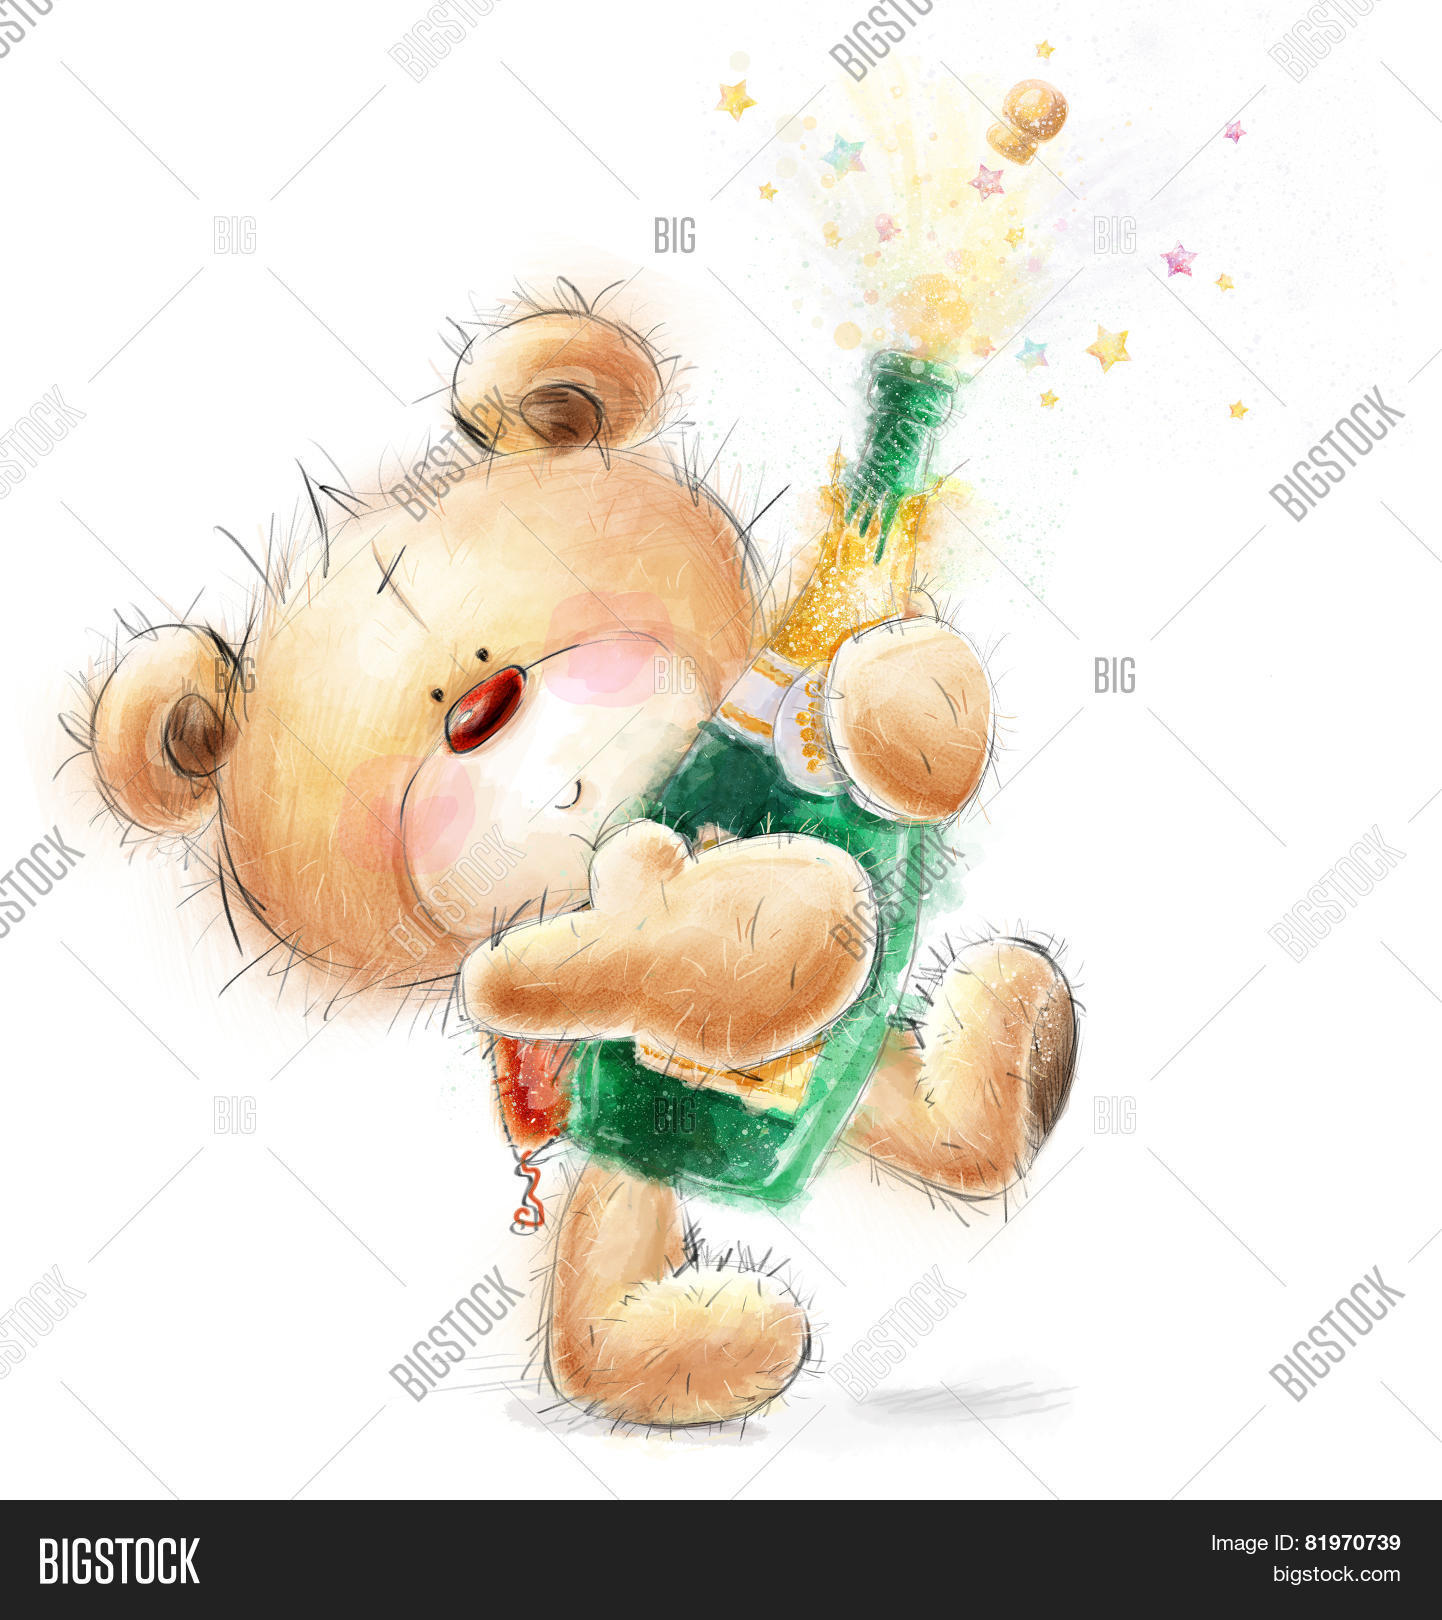 Cute Teddy Bear Bottle Image Photo Free Trial